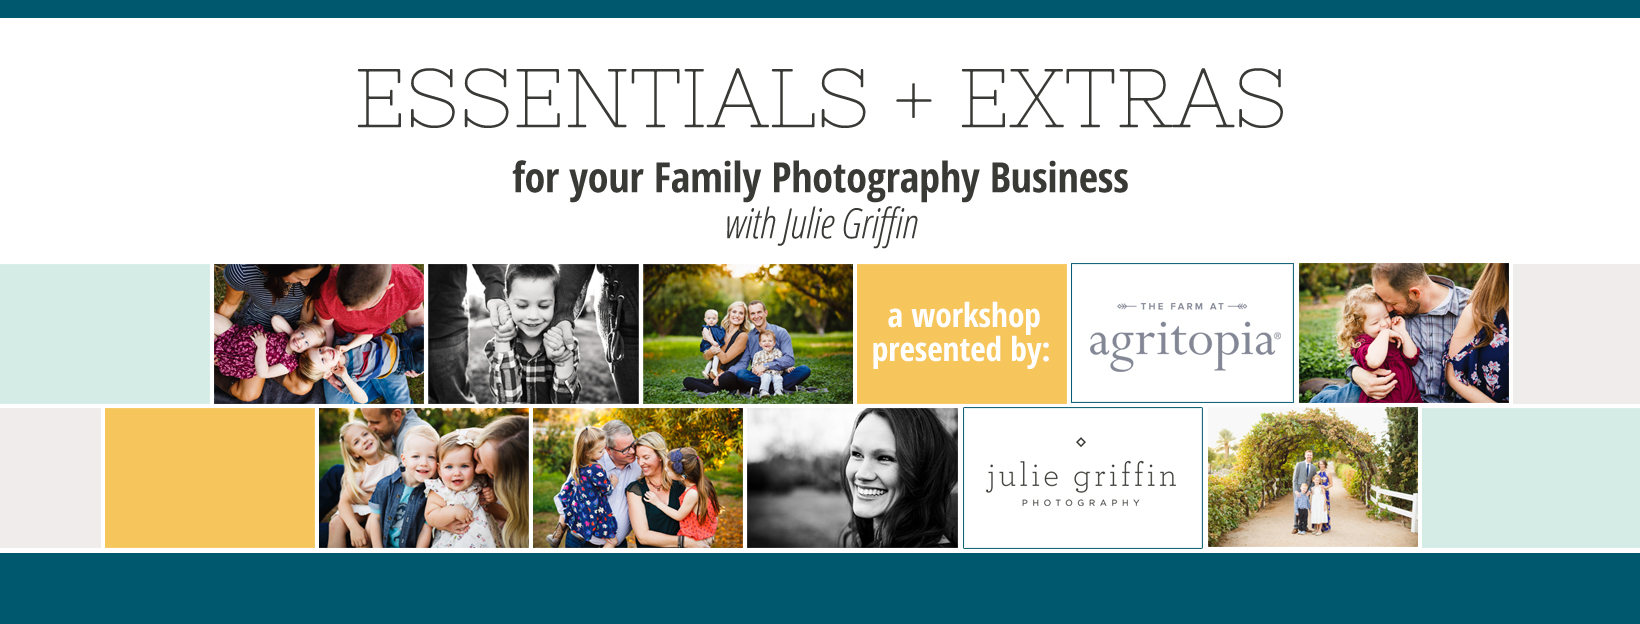 image created by Julie Griffin Photography LLC